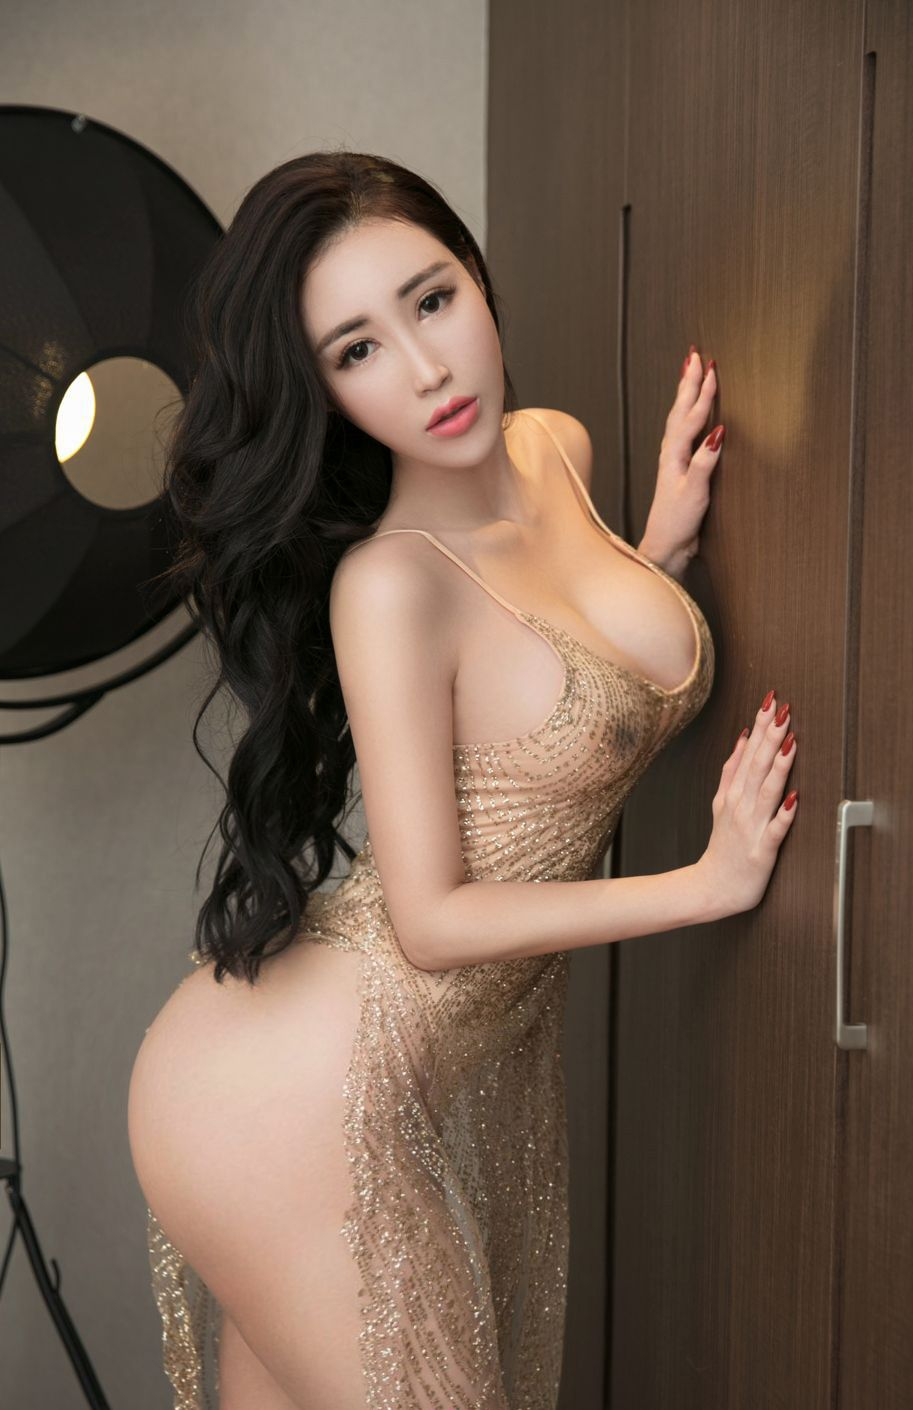 Nude solo picture korean model